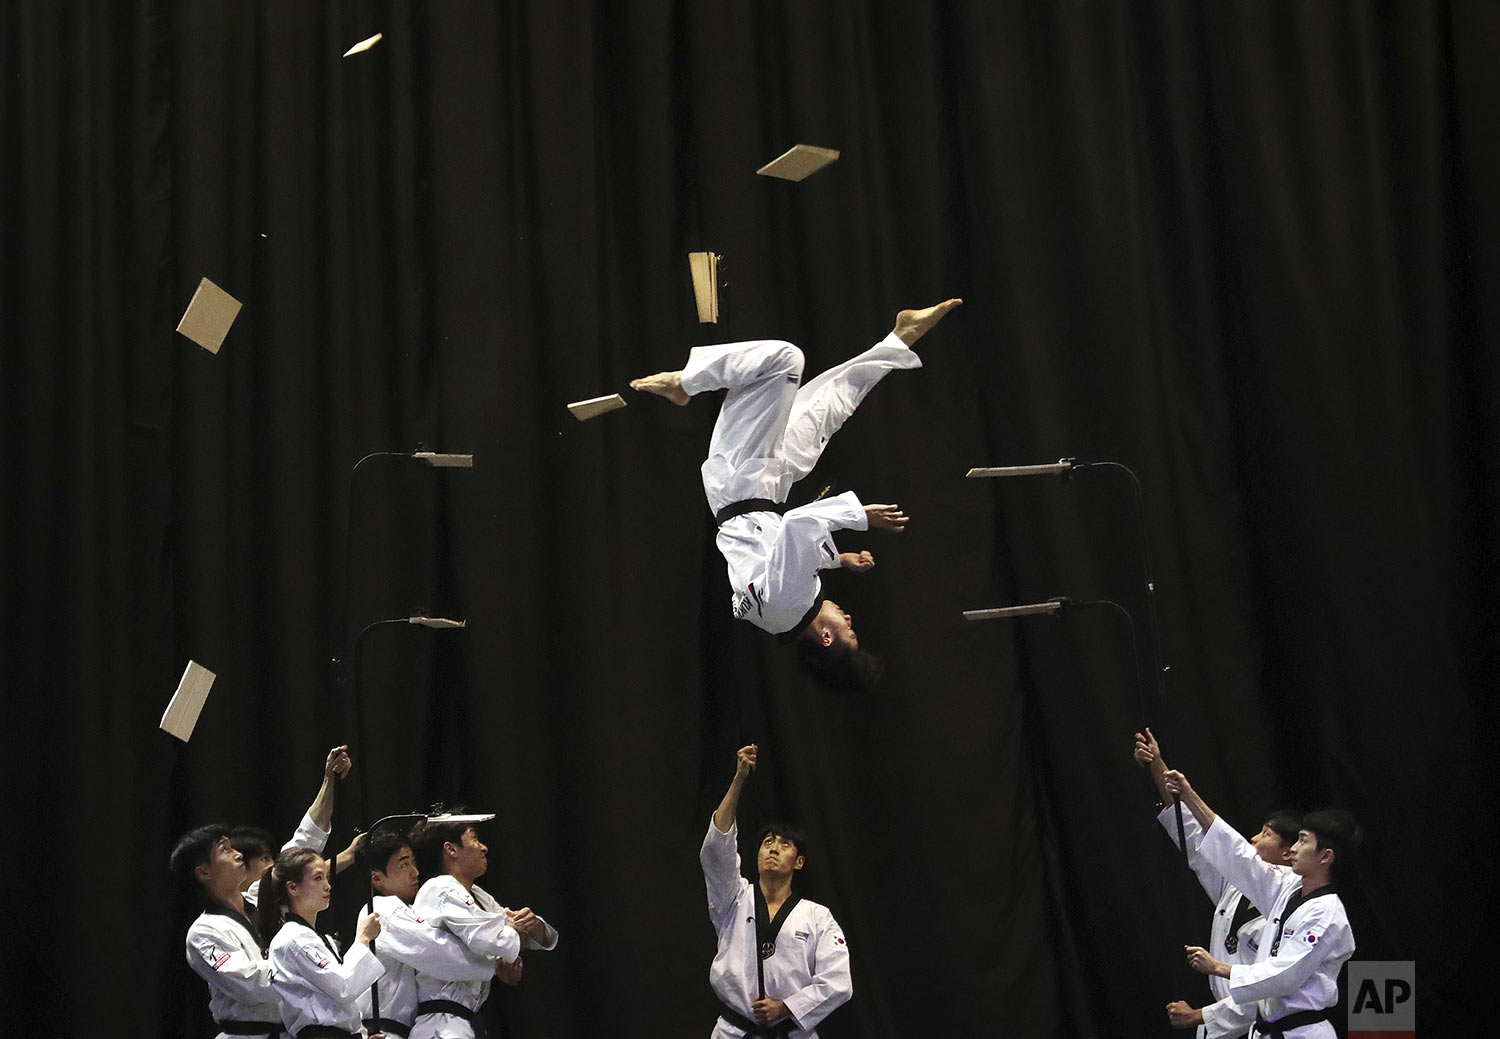 Members of the South Korean Taekwondo demonstration team perform during a visit by Bulgarian Prime Minister Boyko Borisov at Kukkiwon, the headquarters and academy of World Taekwondo, in Seoul, South Korea, Wednesday, Sept. 25, 2019. (AP Photo/Ahn Young-joon)